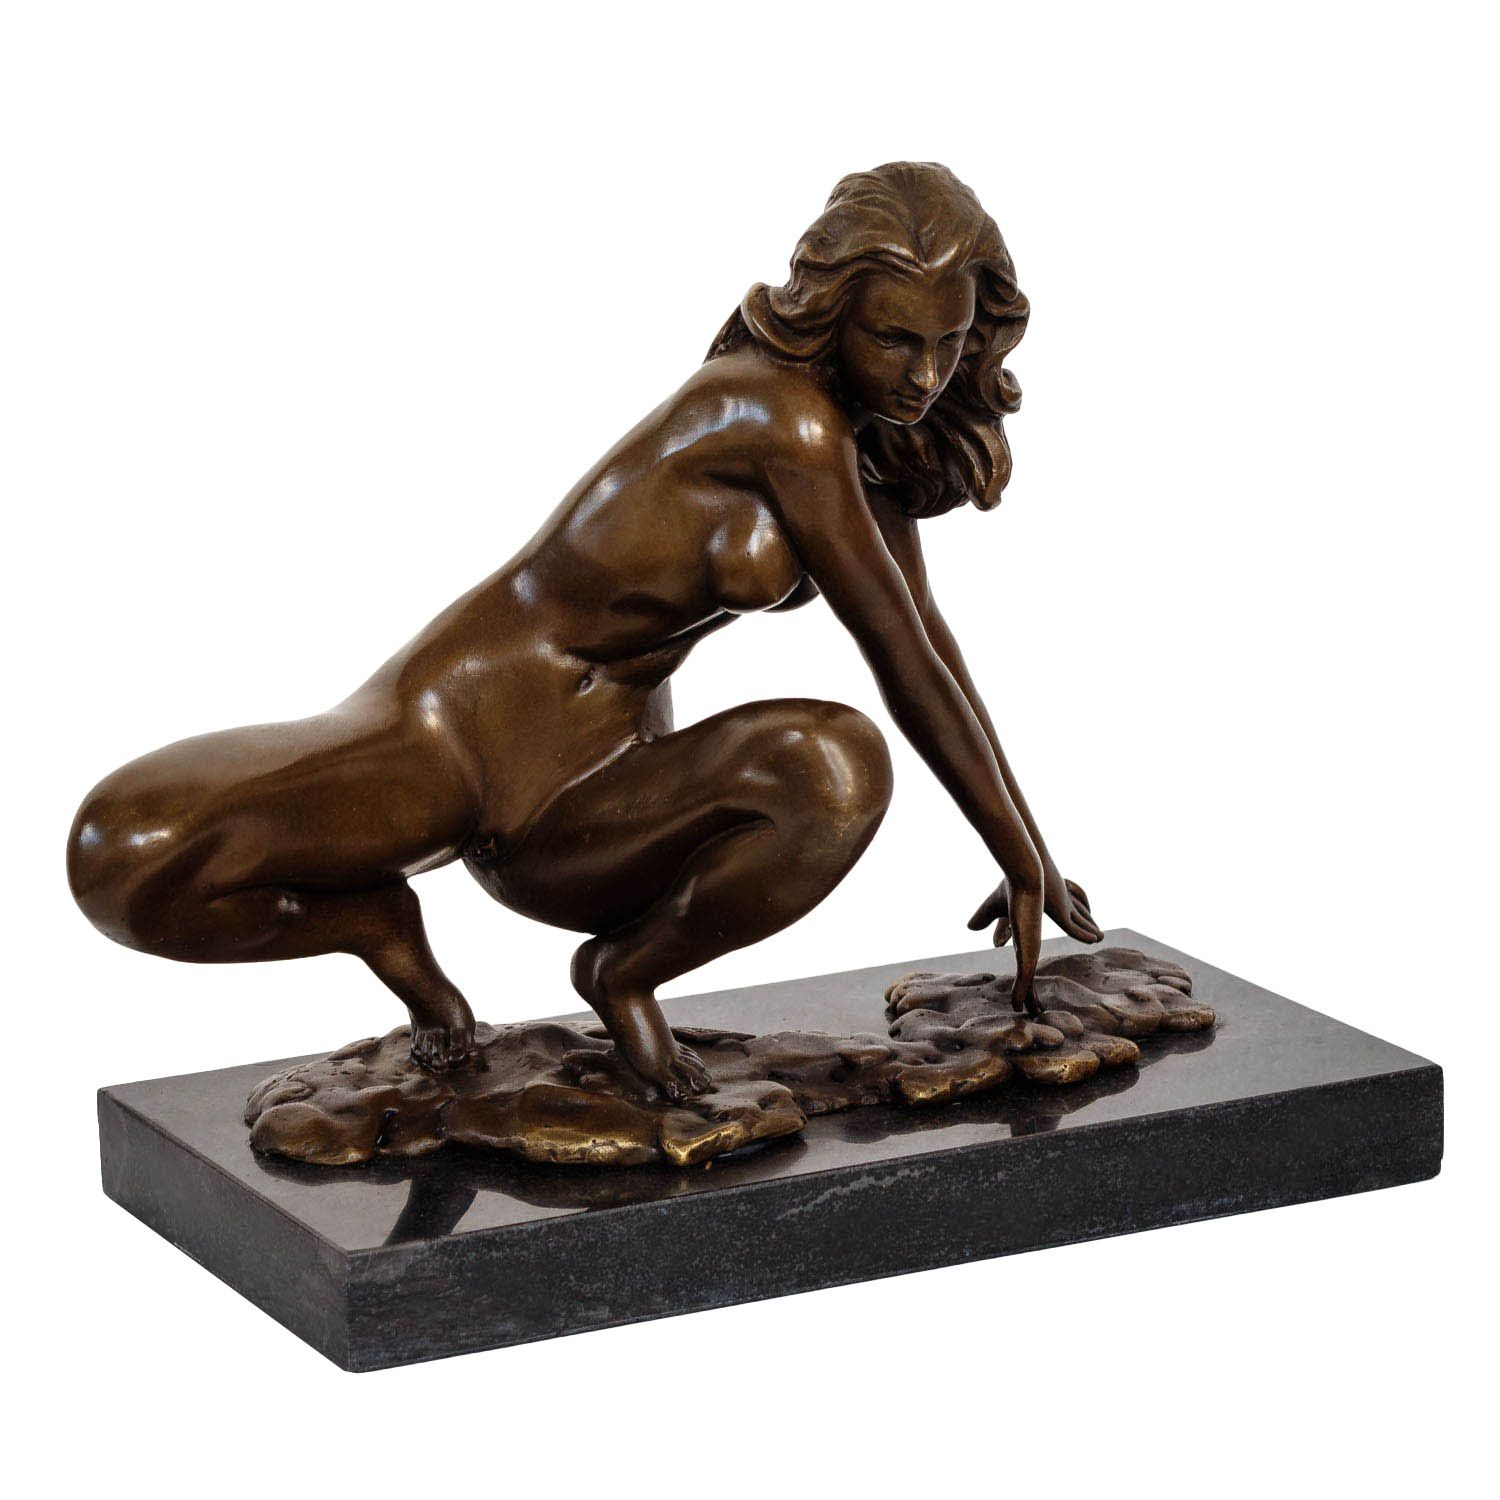 bronzeskulptur erotik erotische kunst frau im antik stil bronze figur 23cm ebay. Black Bedroom Furniture Sets. Home Design Ideas